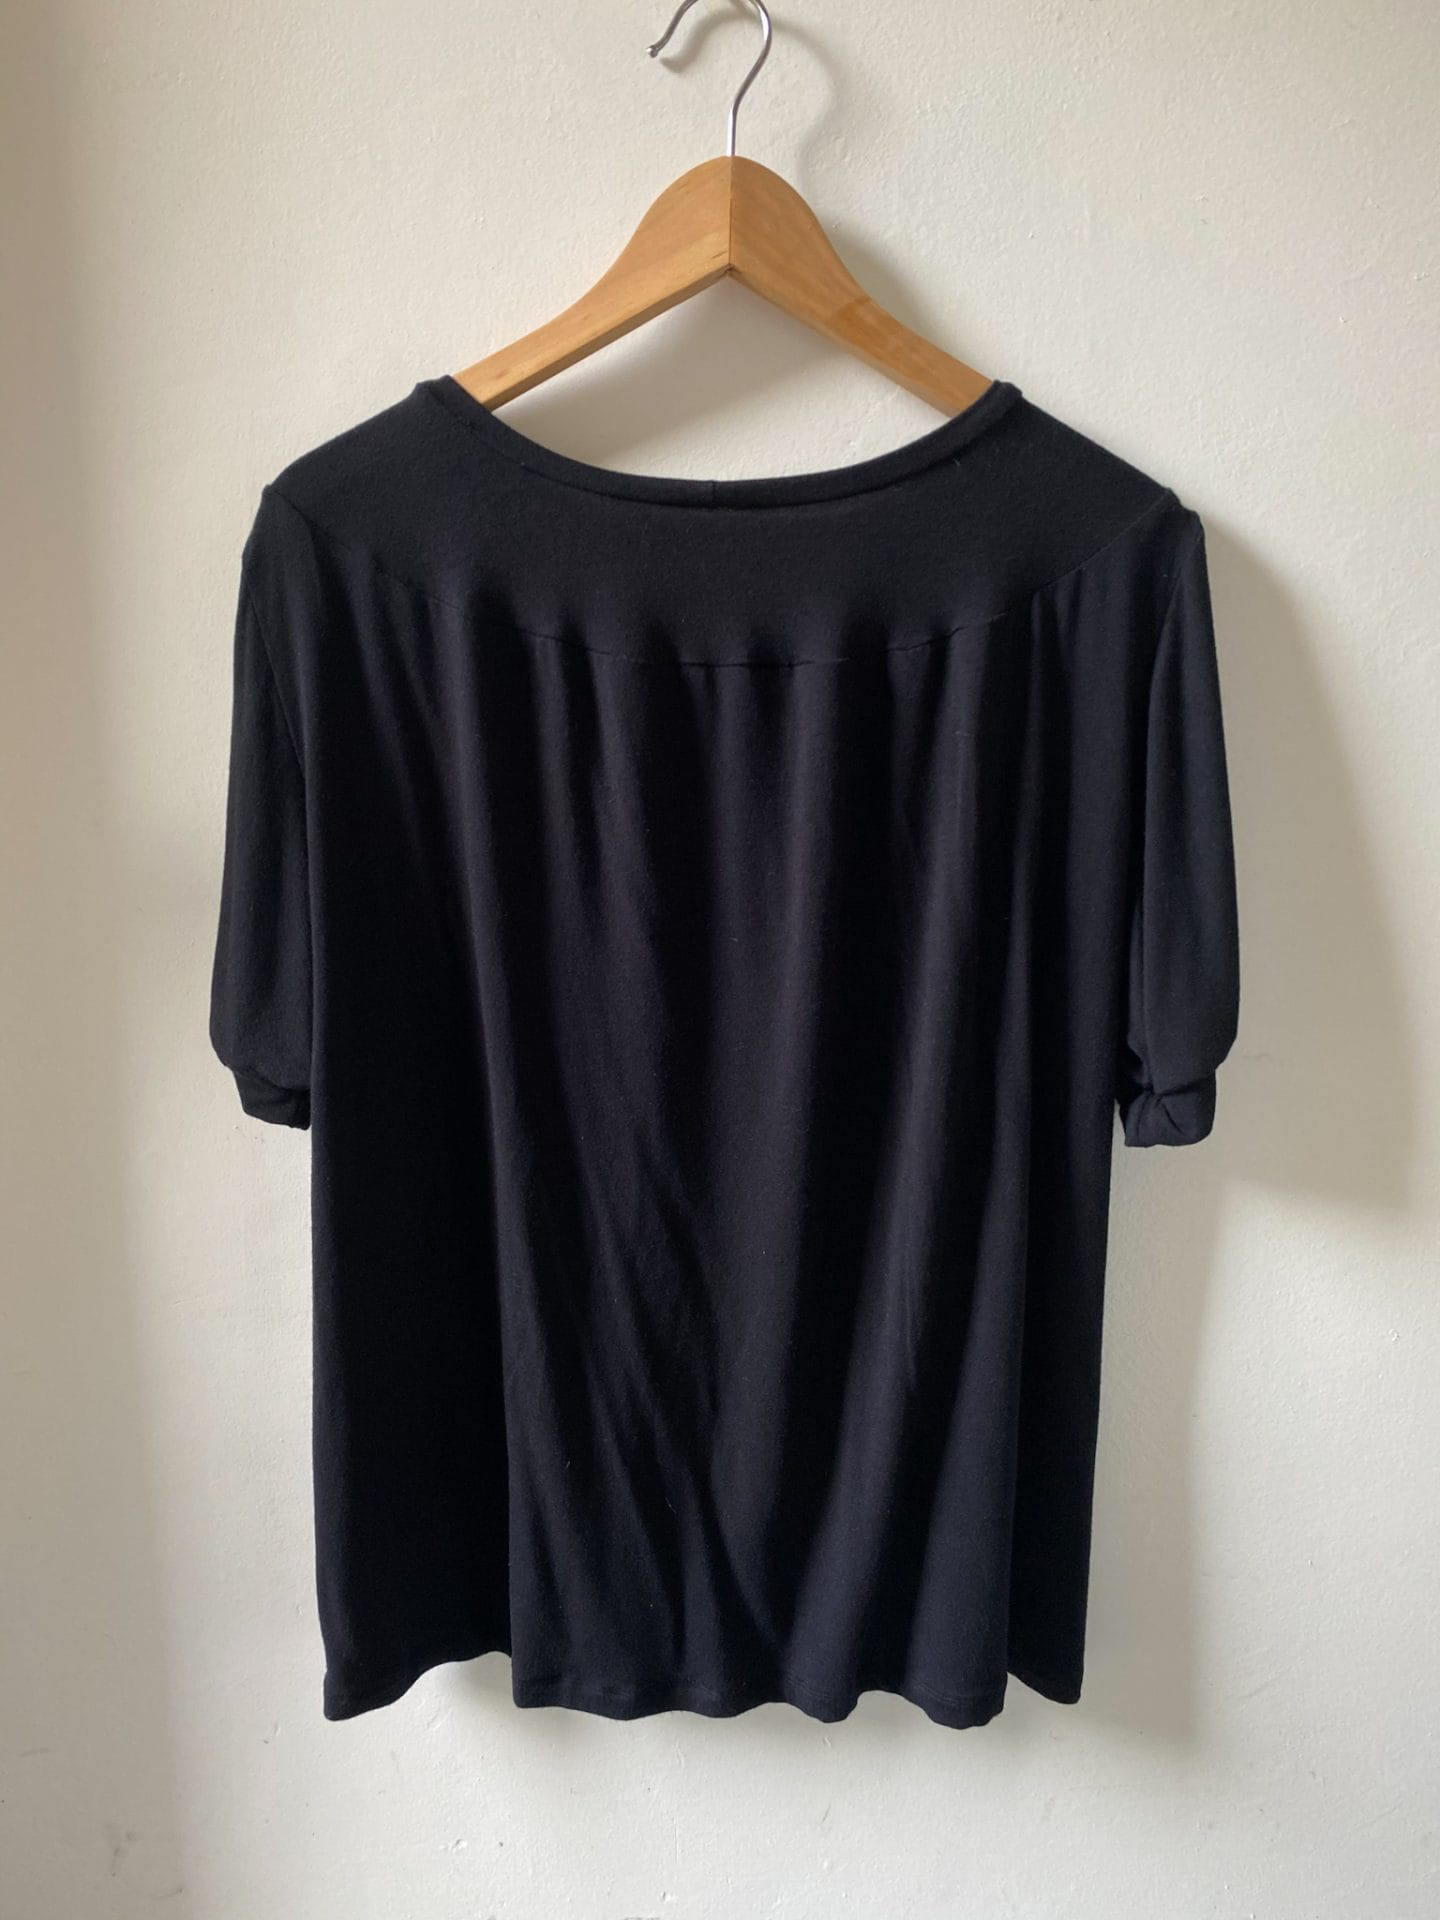 Image of T-shirt hanging from a hanger showing detail of back of the garment